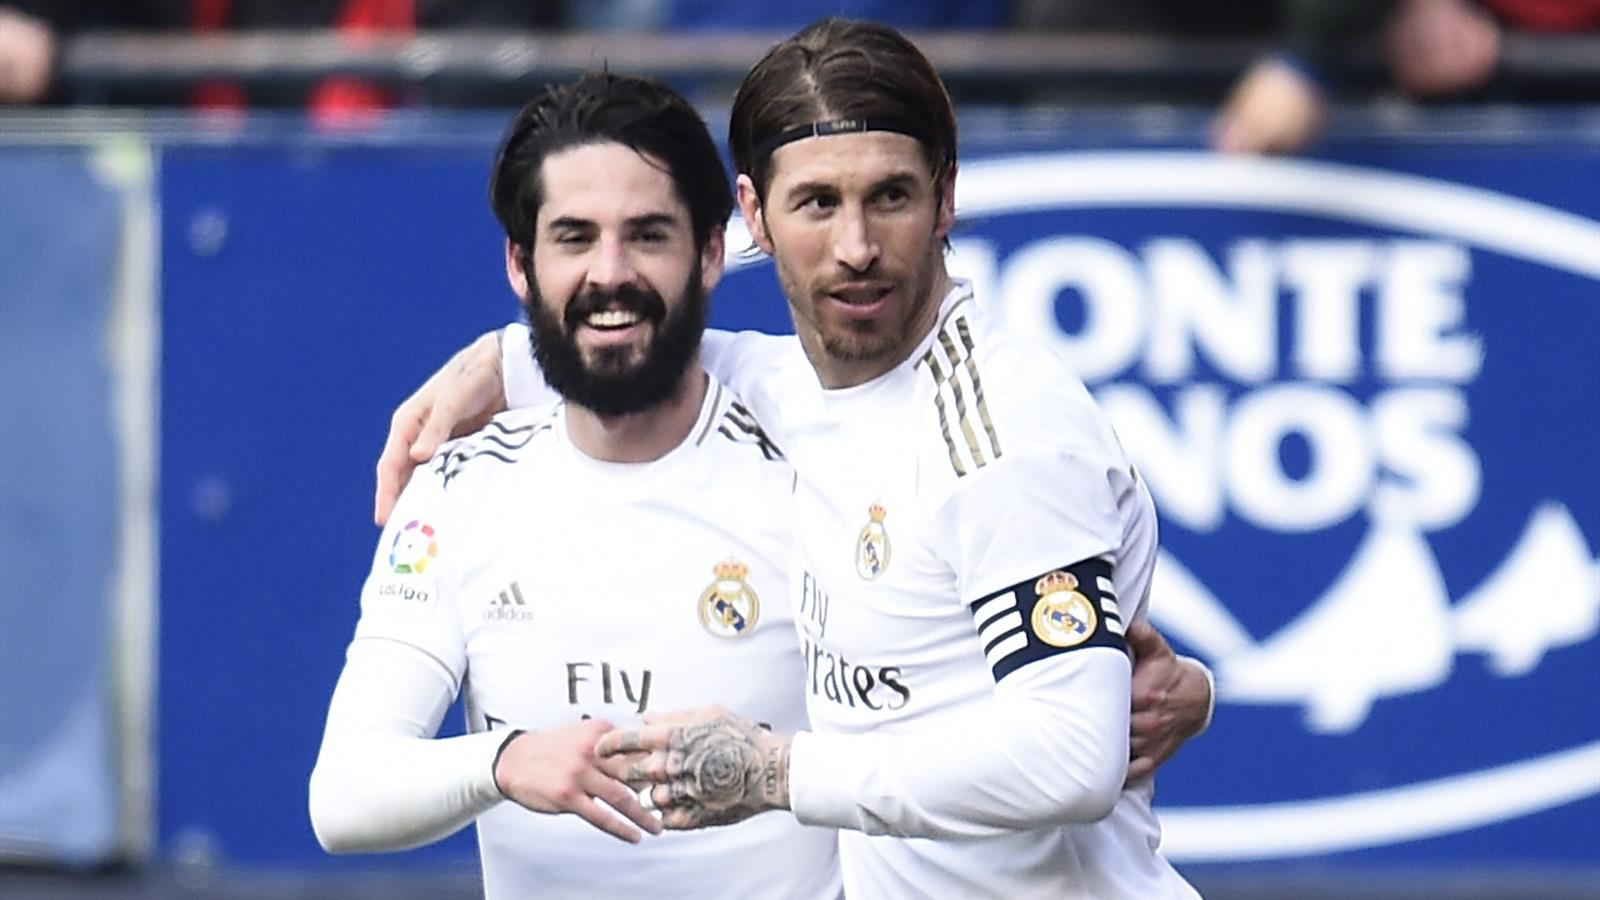 Football news - Real Madrid come from behind at Osasuna to e